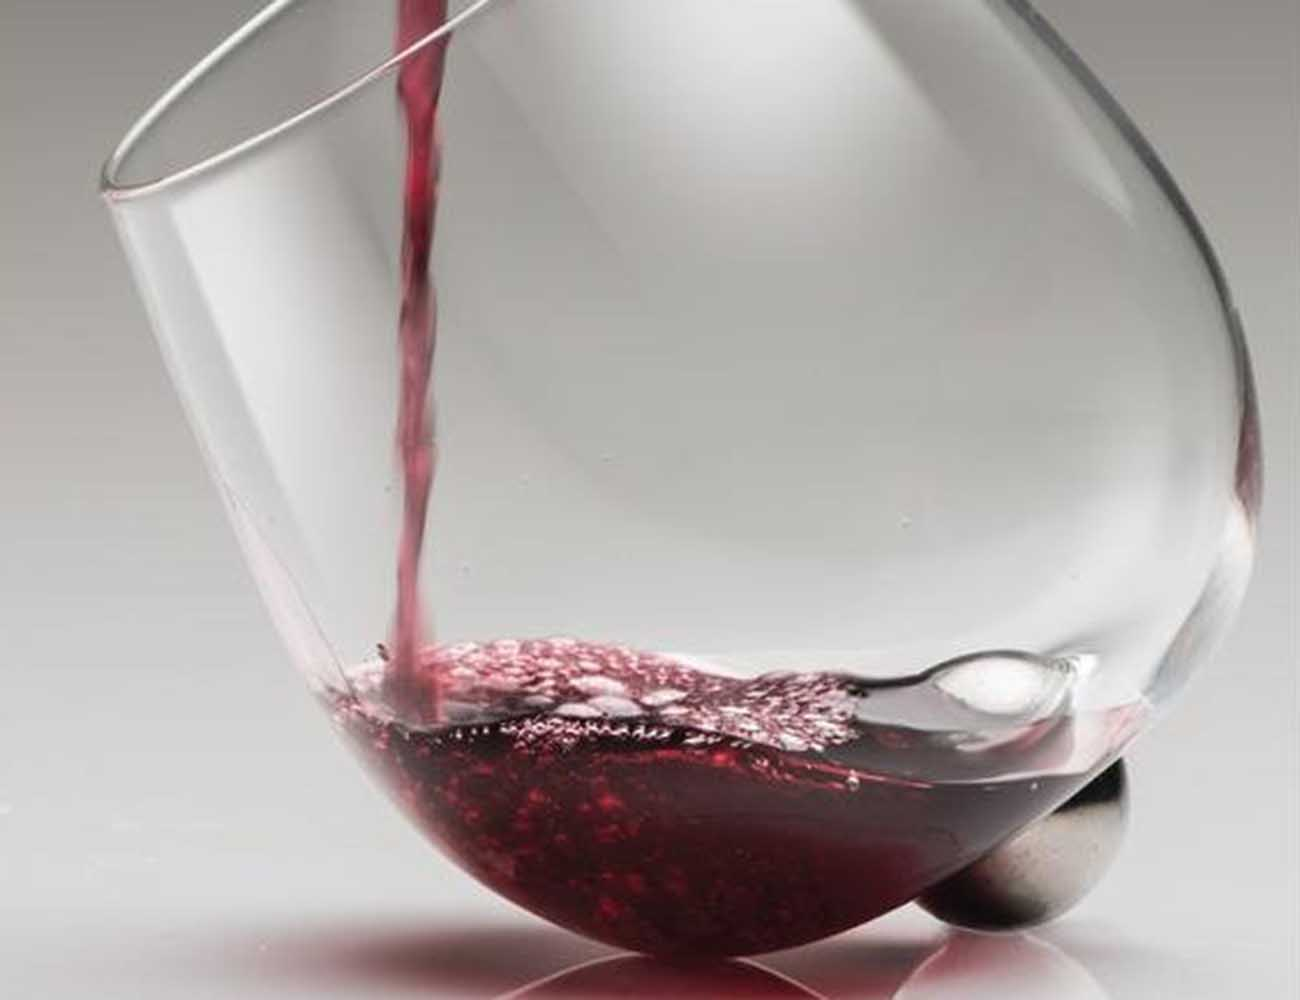 Aura+Glass+%E2%80%93+The+Automatic+Wine+Decanter